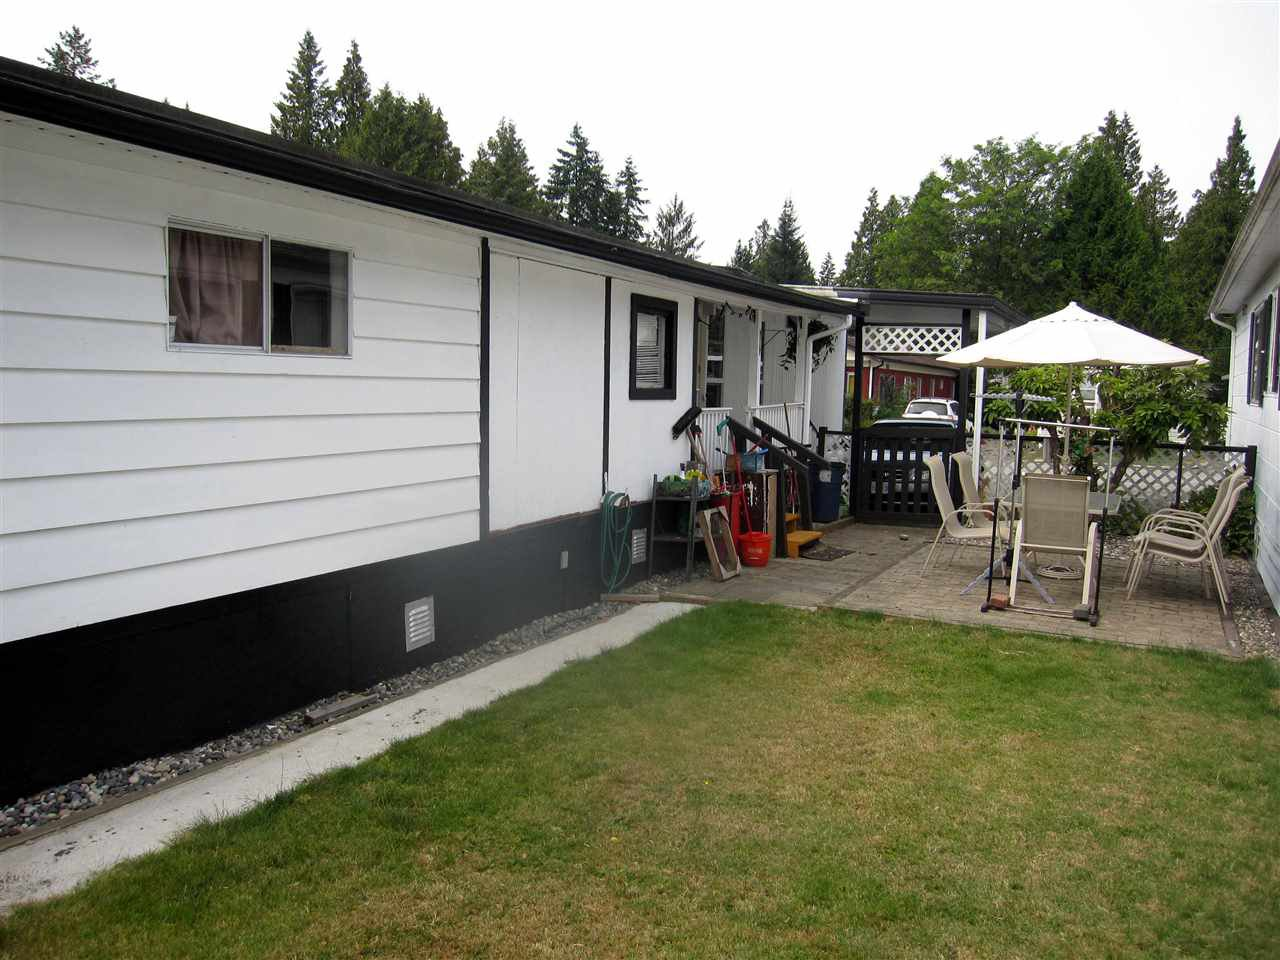 Photo 10: Photos: 24 21163 LOUGHEED Highway in Maple Ridge: Southwest Maple Ridge Manufactured Home for sale : MLS®# R2297032